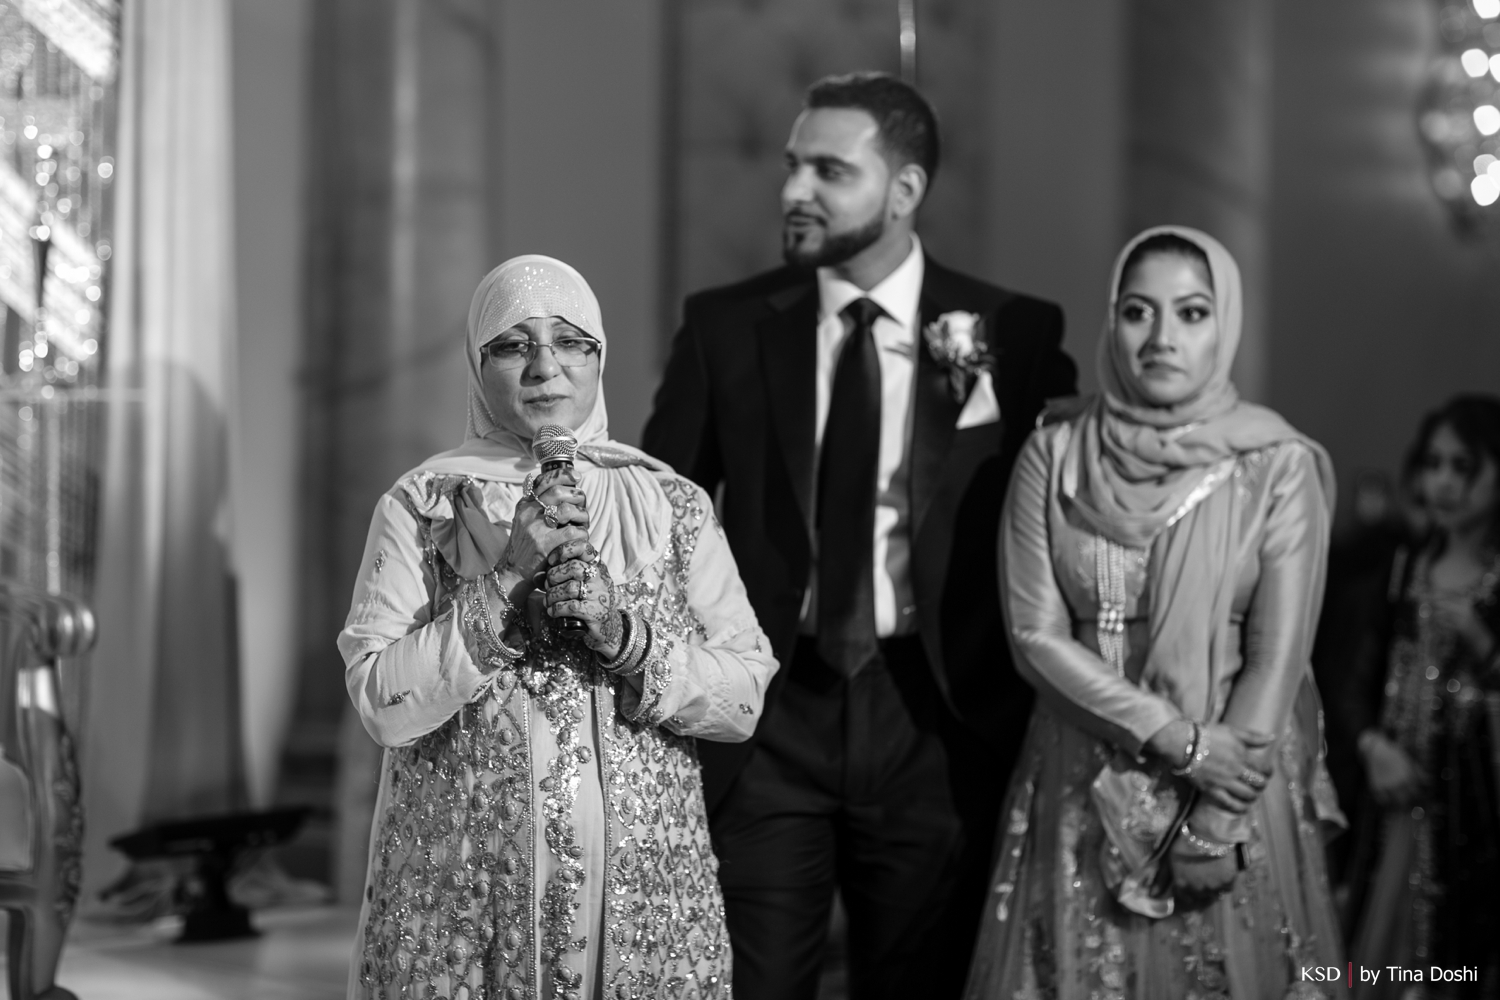 nj_south_asian_wedding_0117